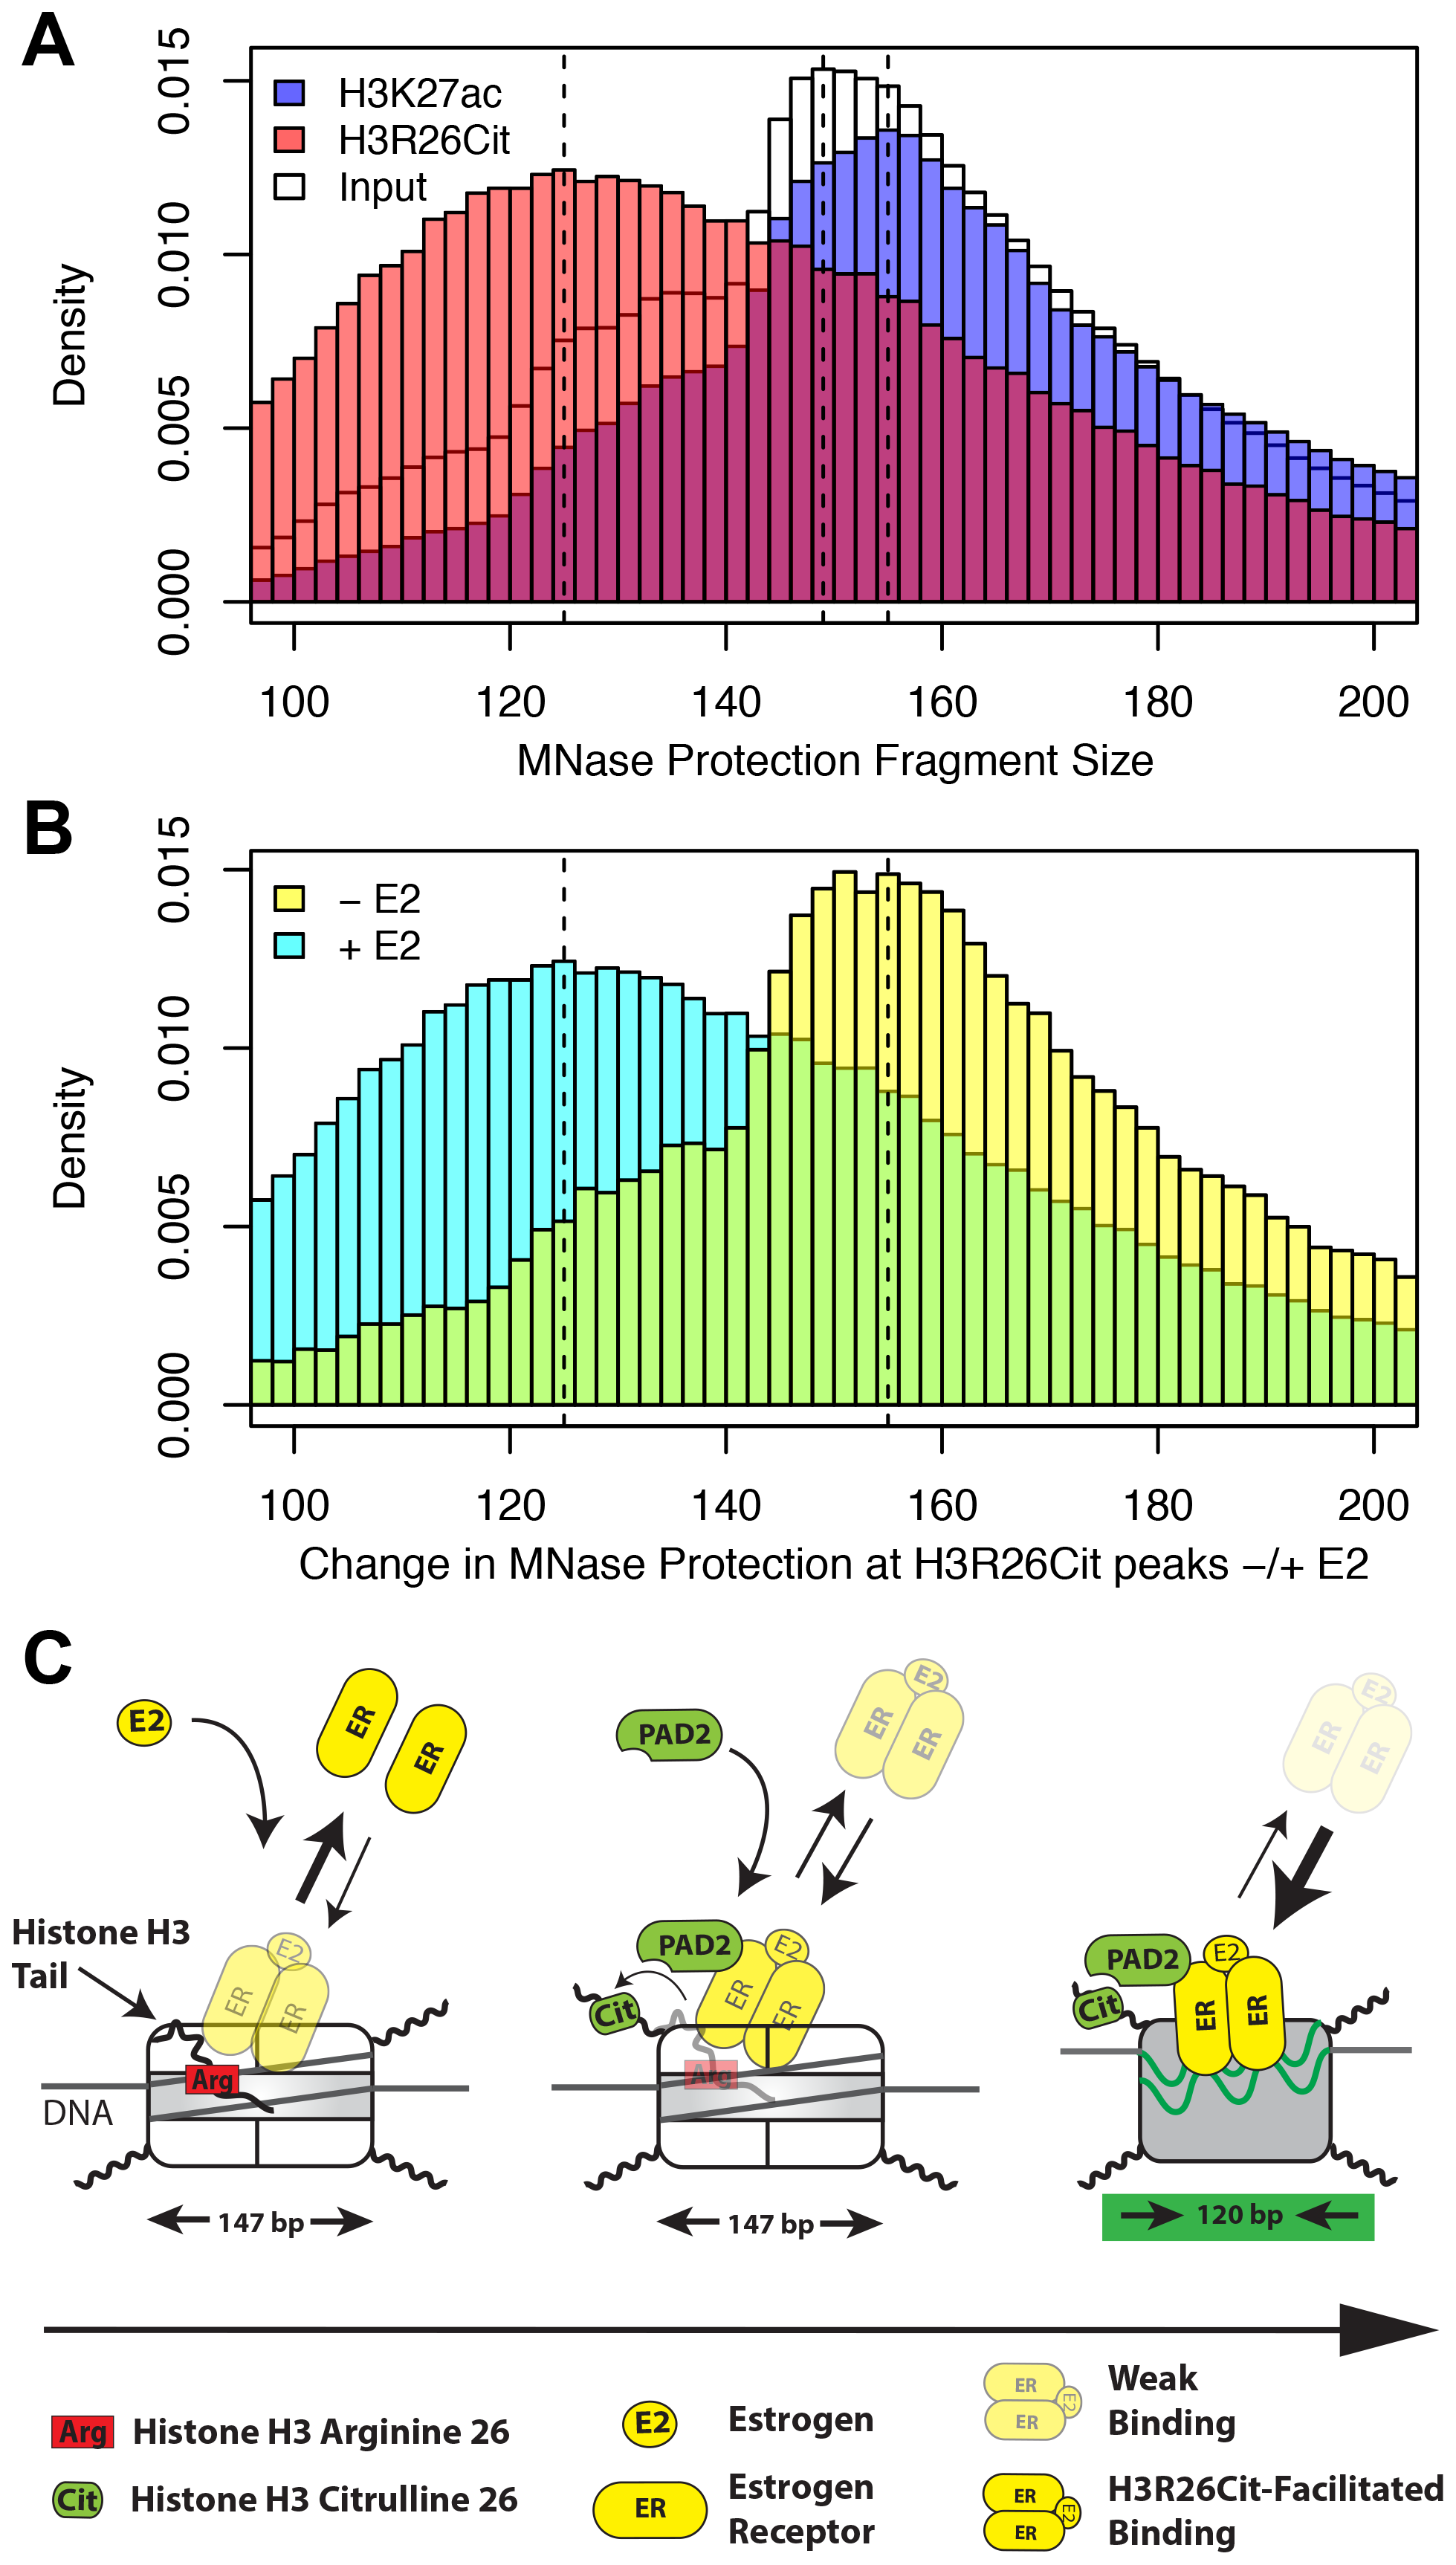 H3R26Cit changes the nucleosome structure to allow for efficient ER binding.